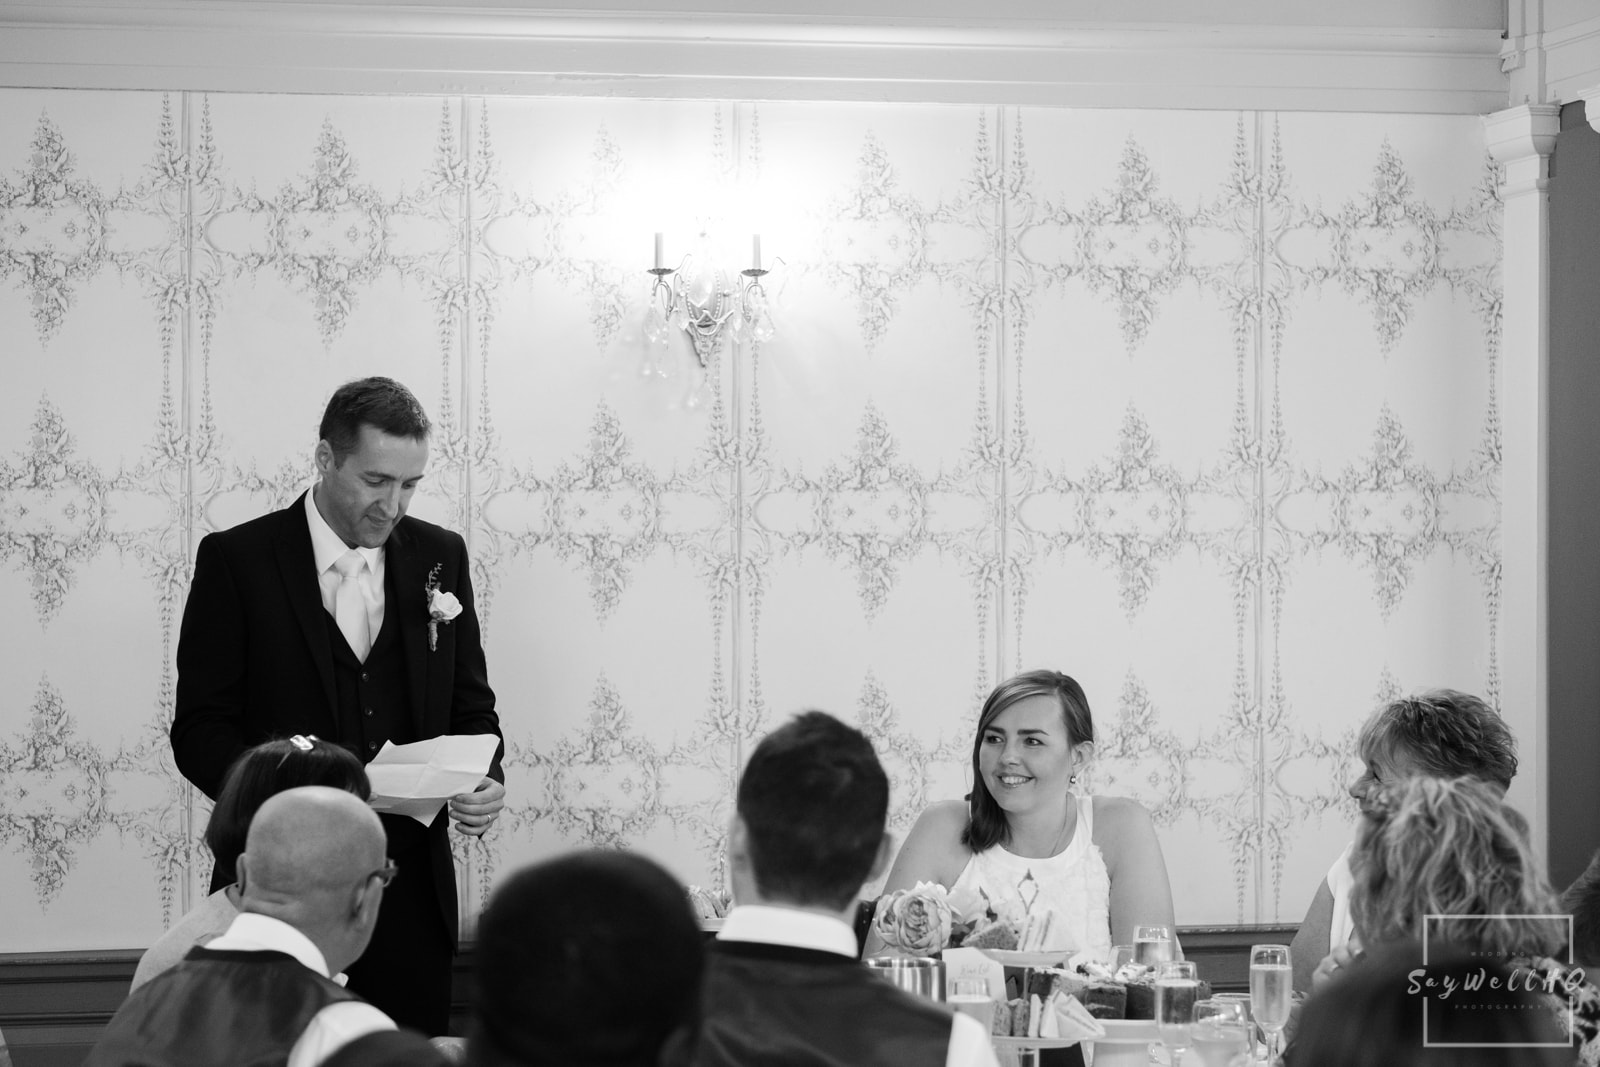 West Bridgford Wedding Photography + Bridgford Hall Wedding Photographer + groom making his wedding speech